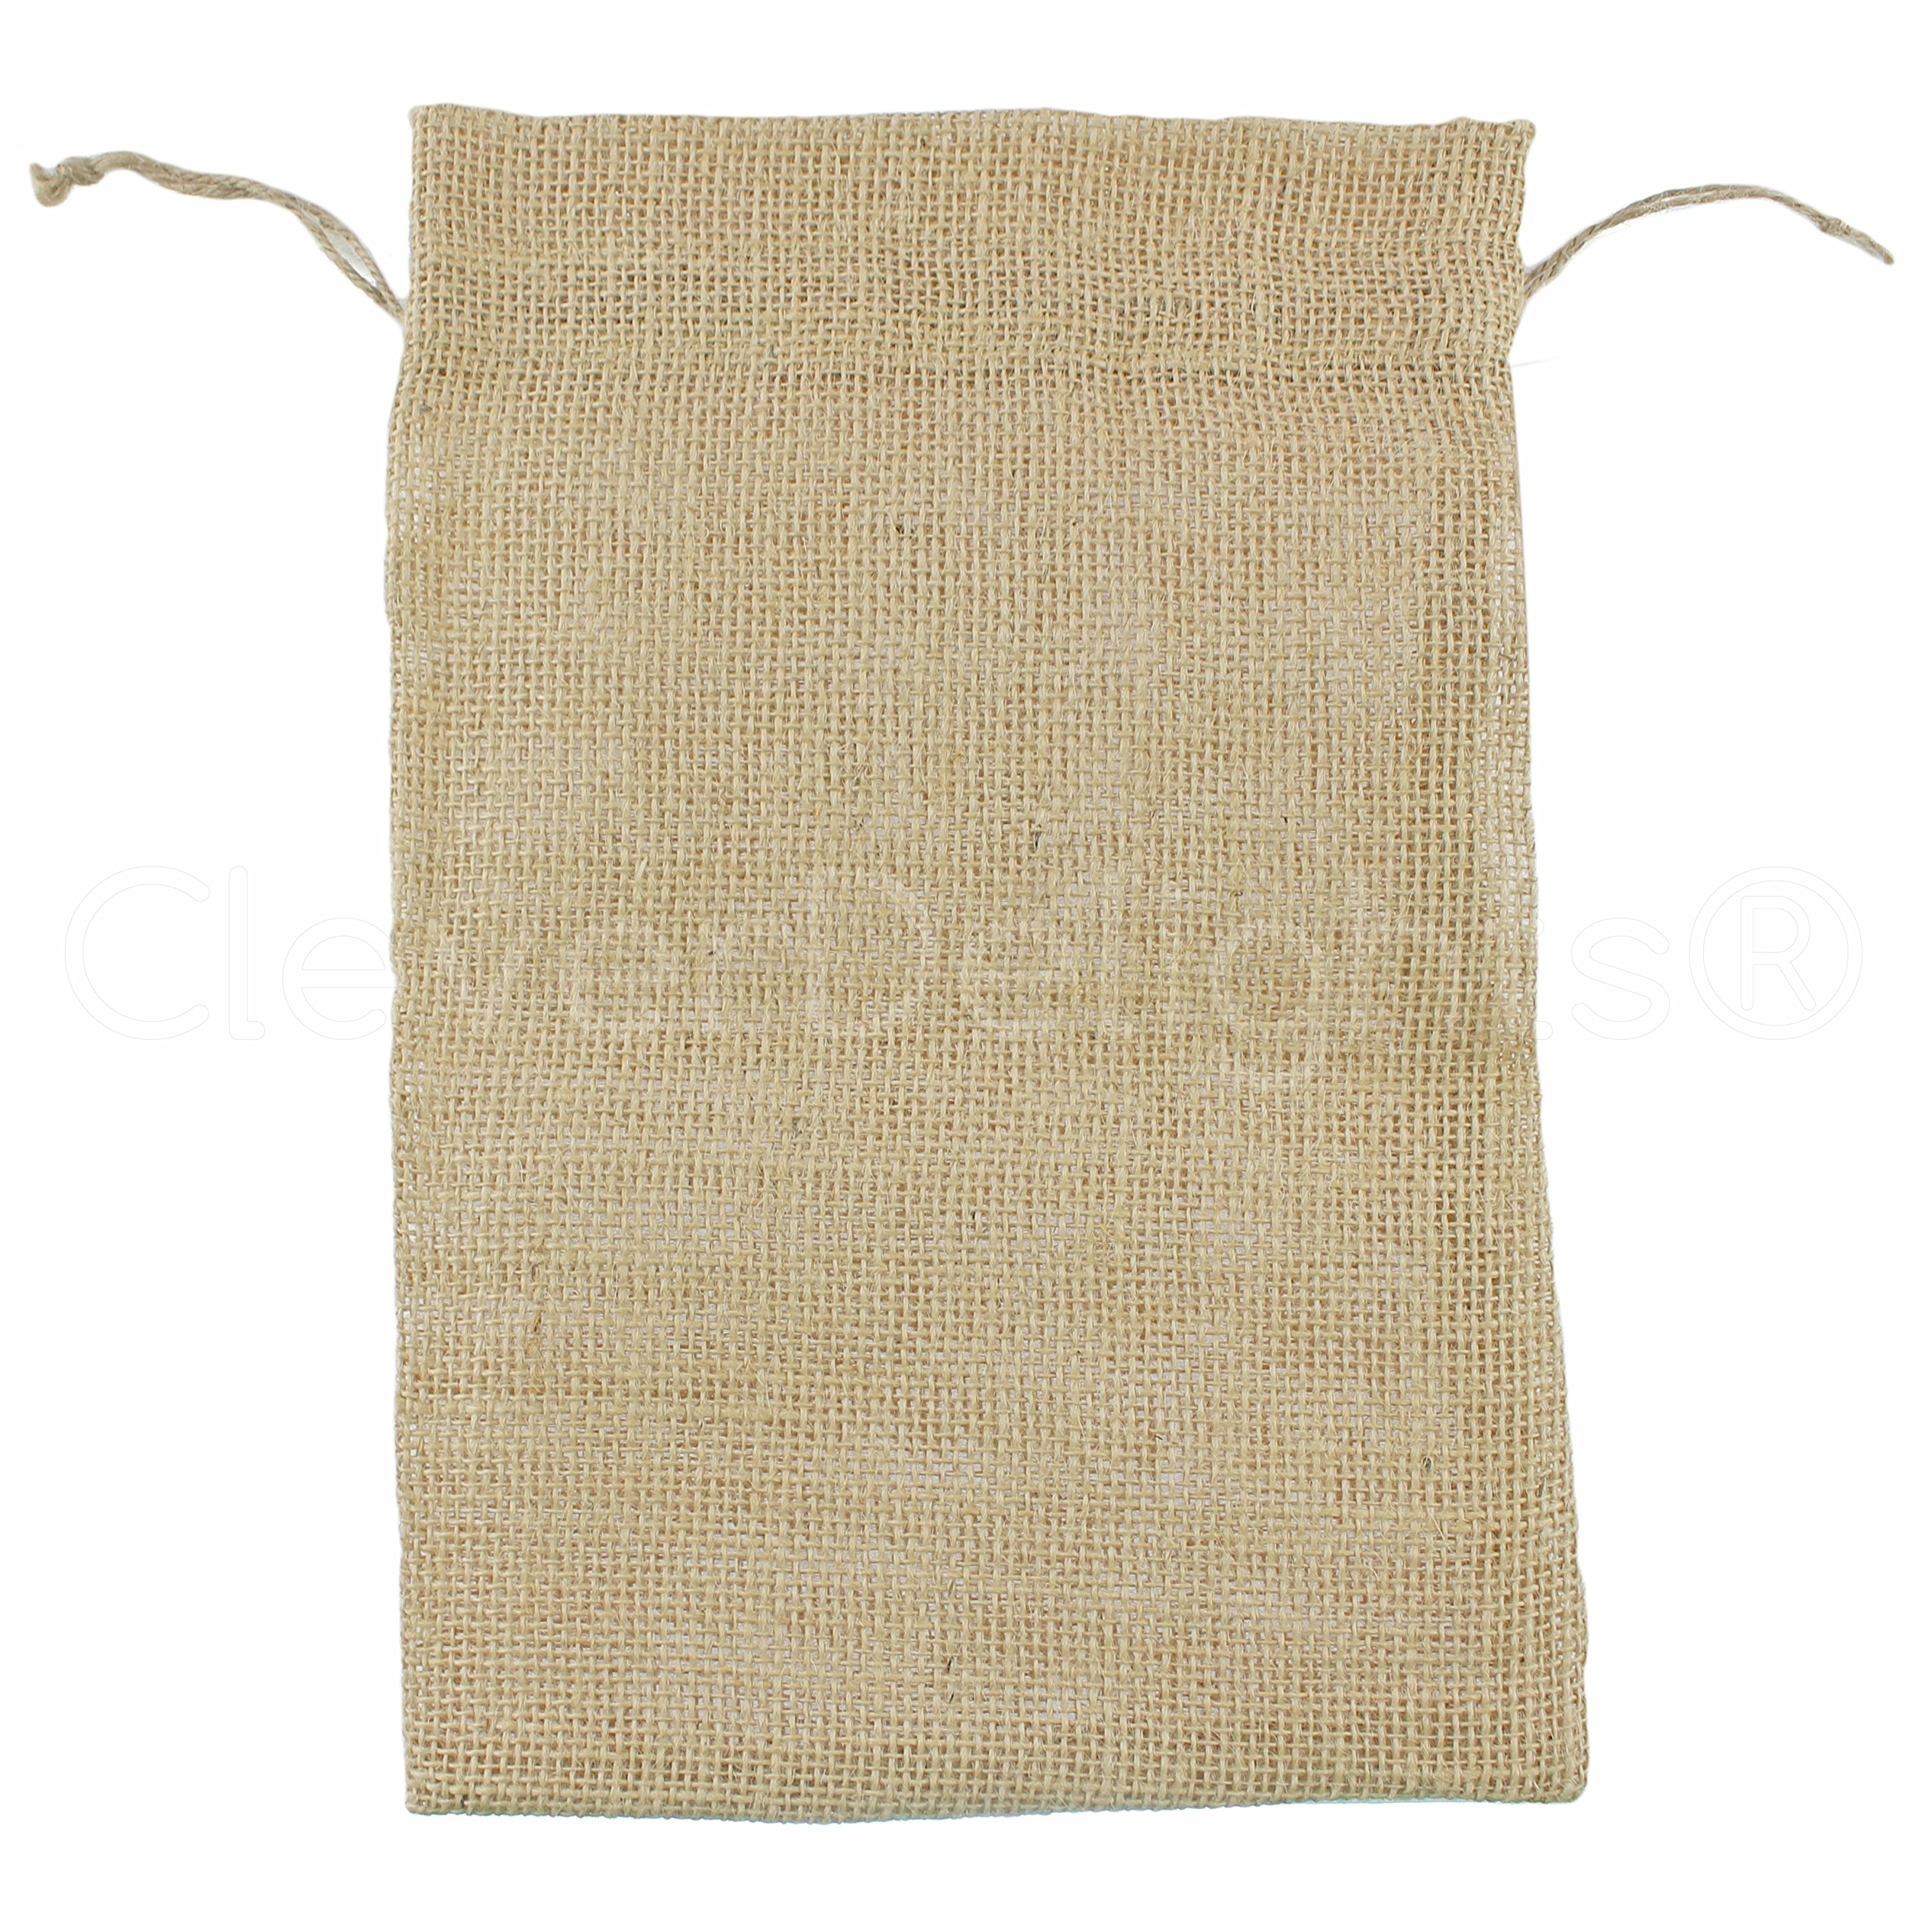 CleverDelights 8'' x 12'' Burlap Bags with Natural Jute Drawstring - 5 Pack - Burlap Pouch Sack Favor Bag for Showers Weddings Parties and Receptions - 8x12 inch by CleverDelights (Image #1)